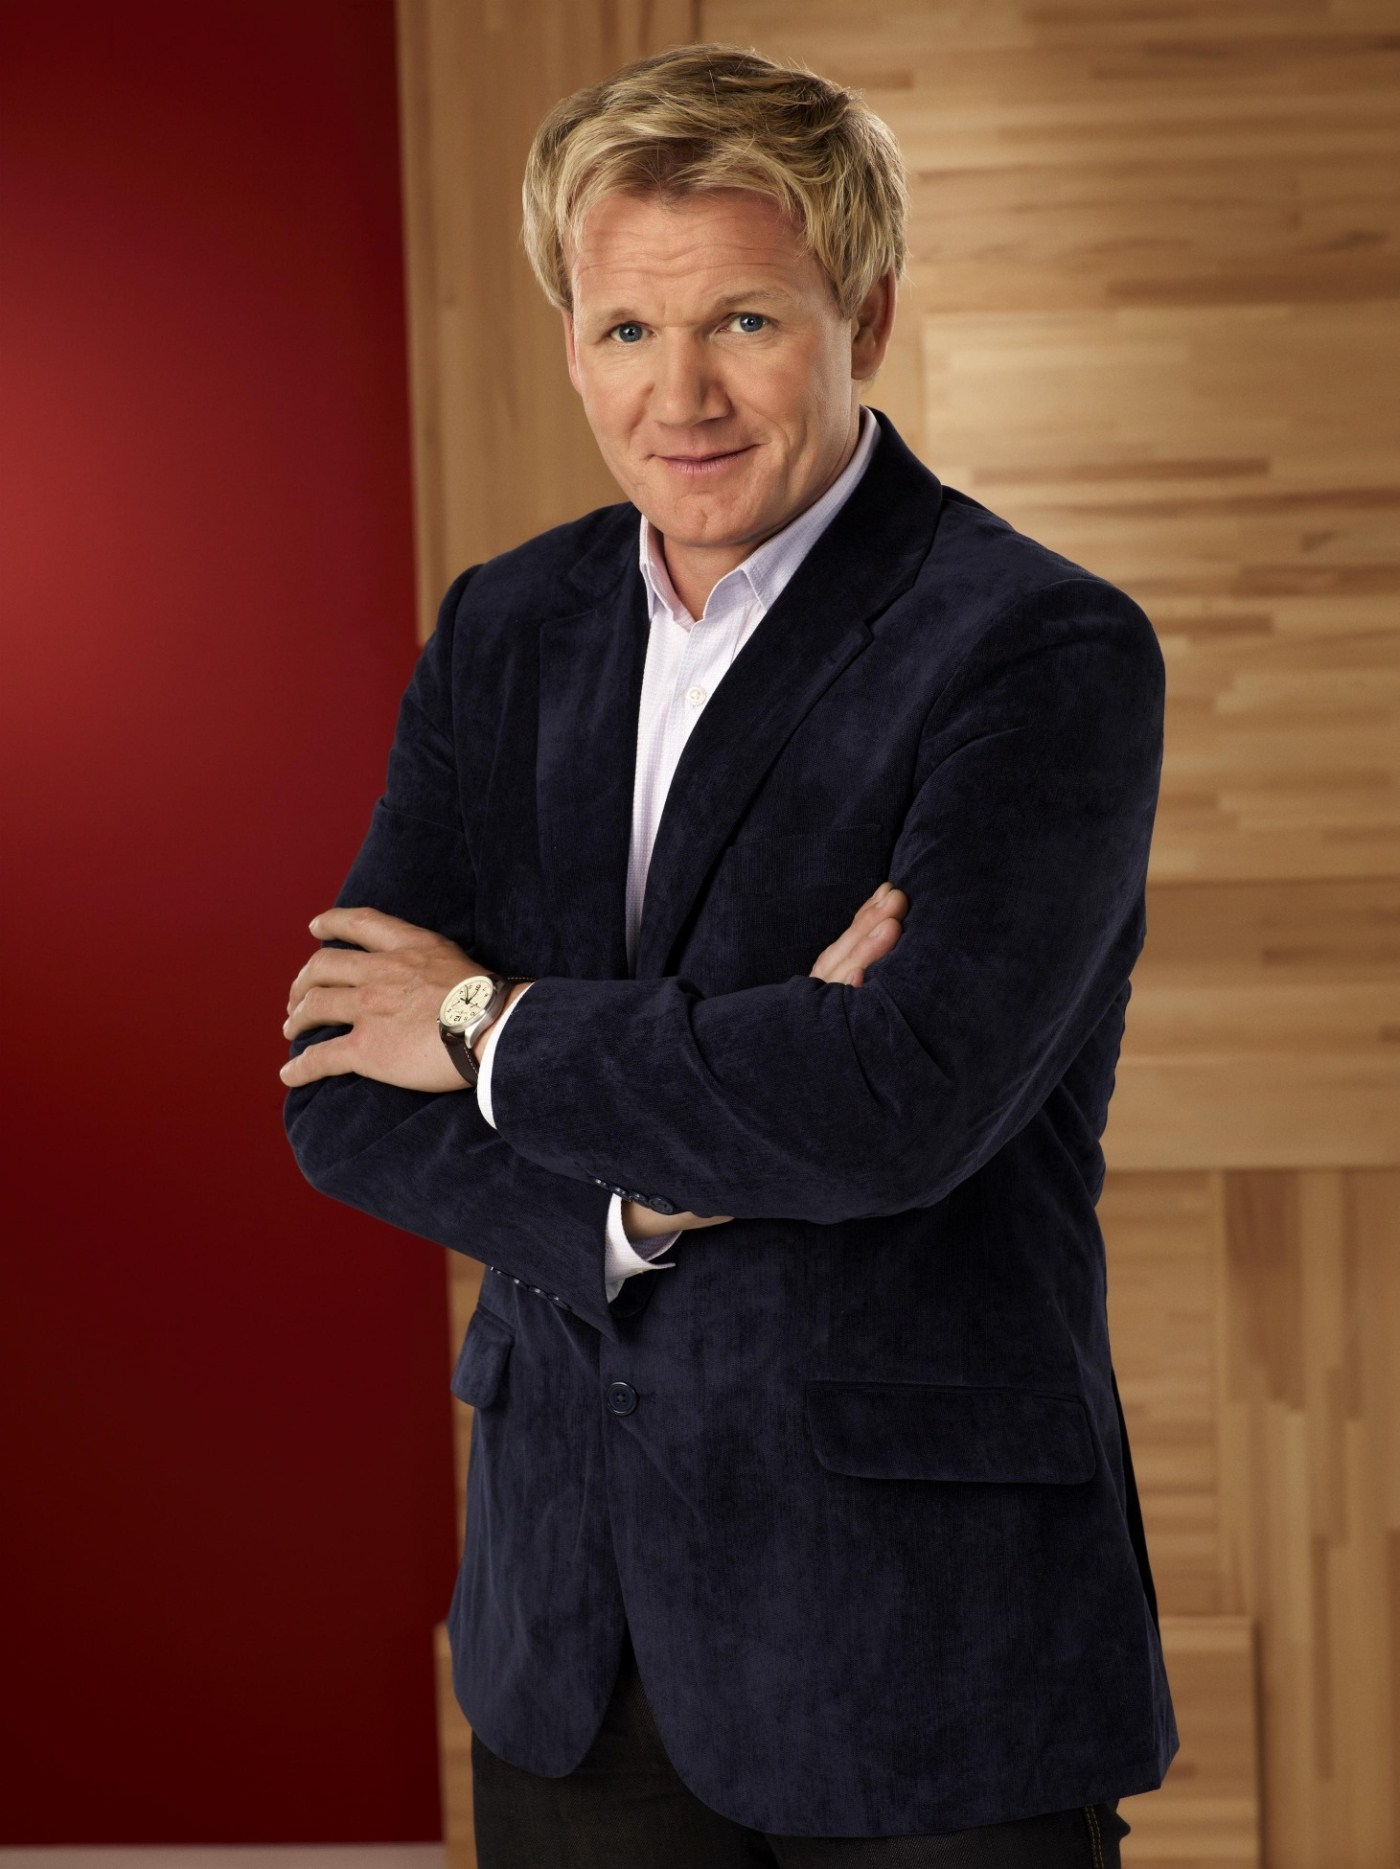 Gordon Ramsay photo #413097